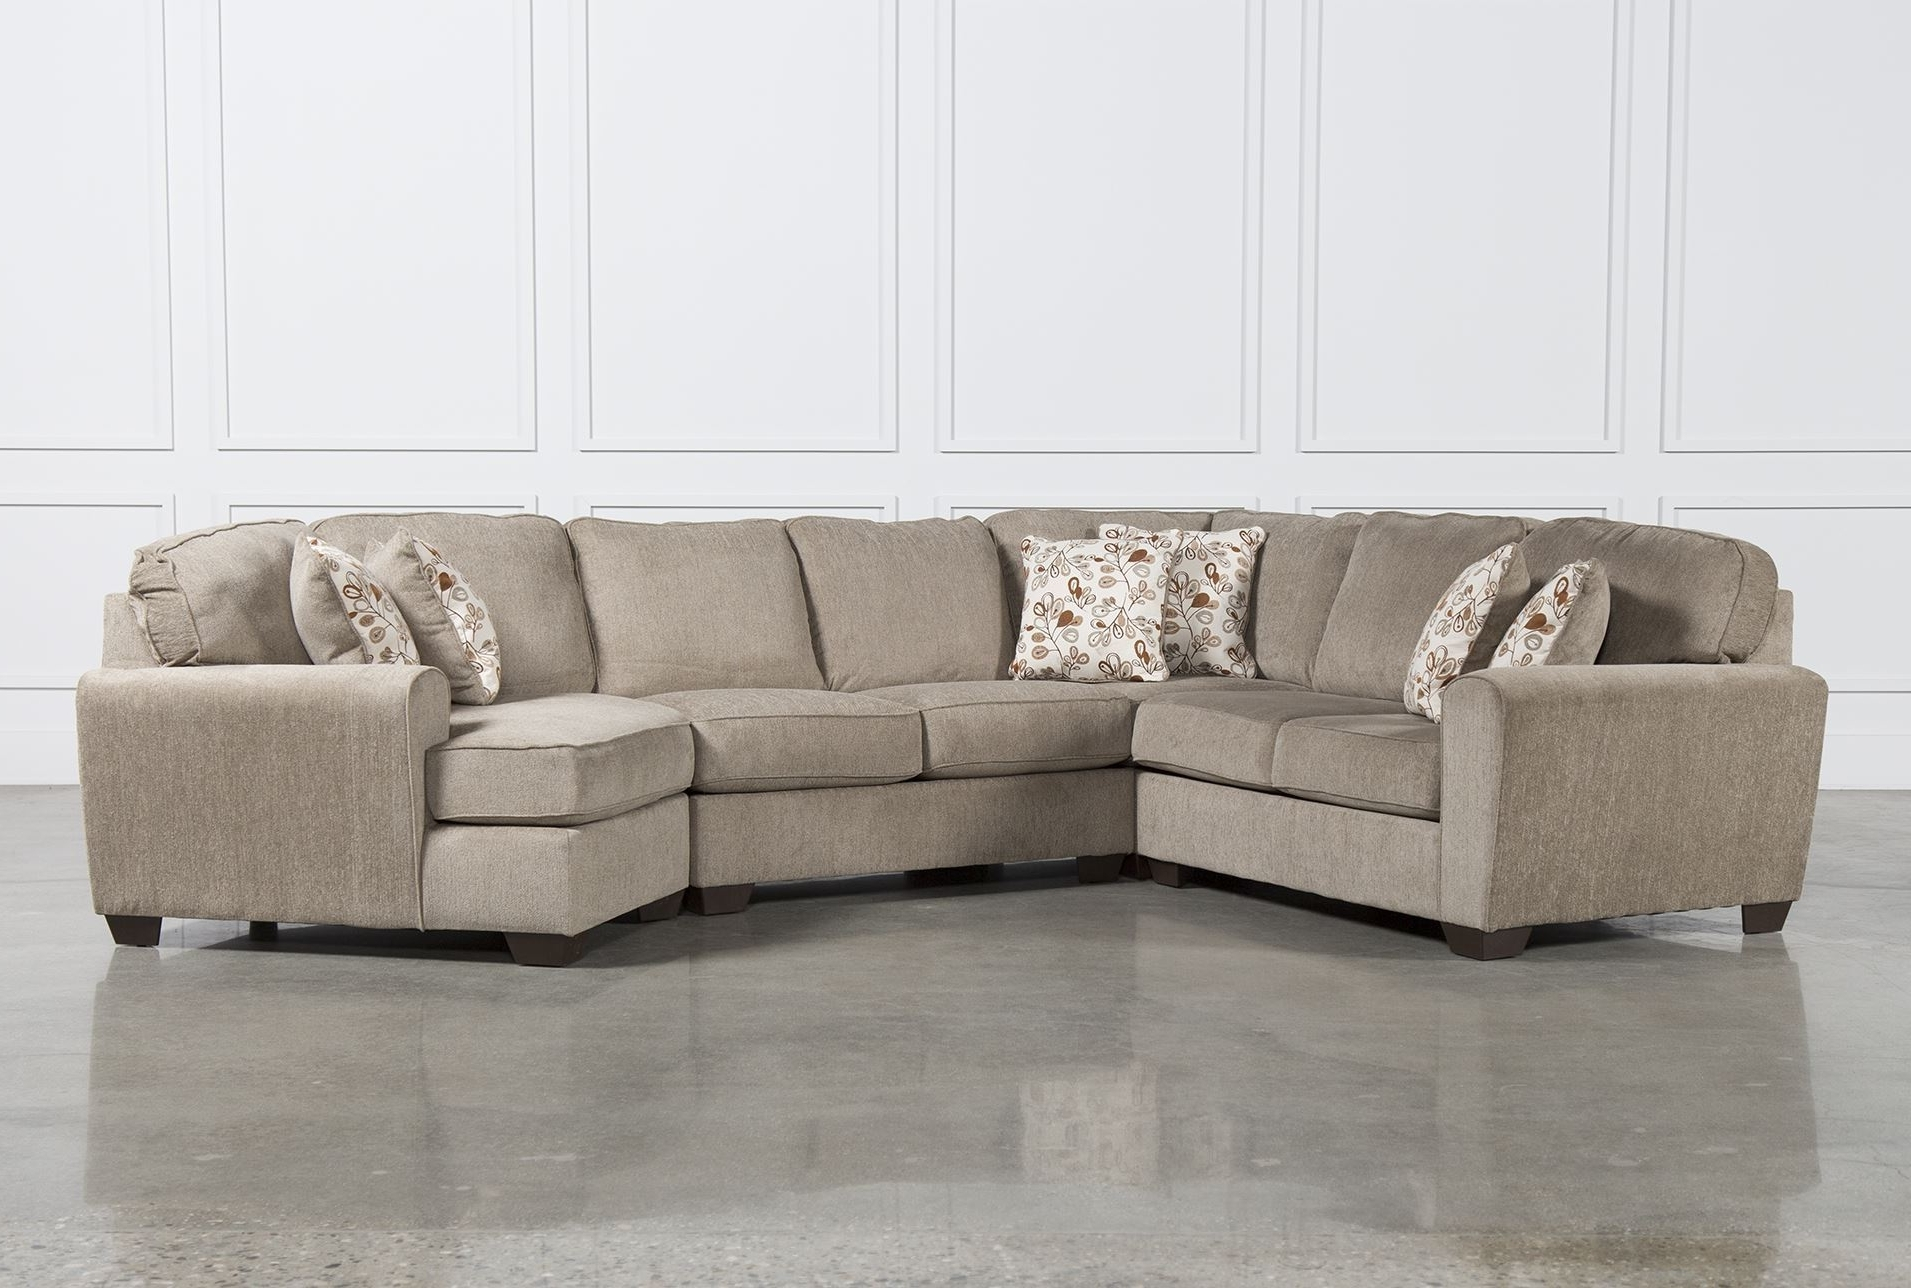 Most Popular Sectional Sofas At Havertys In Havertys Sectional Sofa (View 10 of 20)